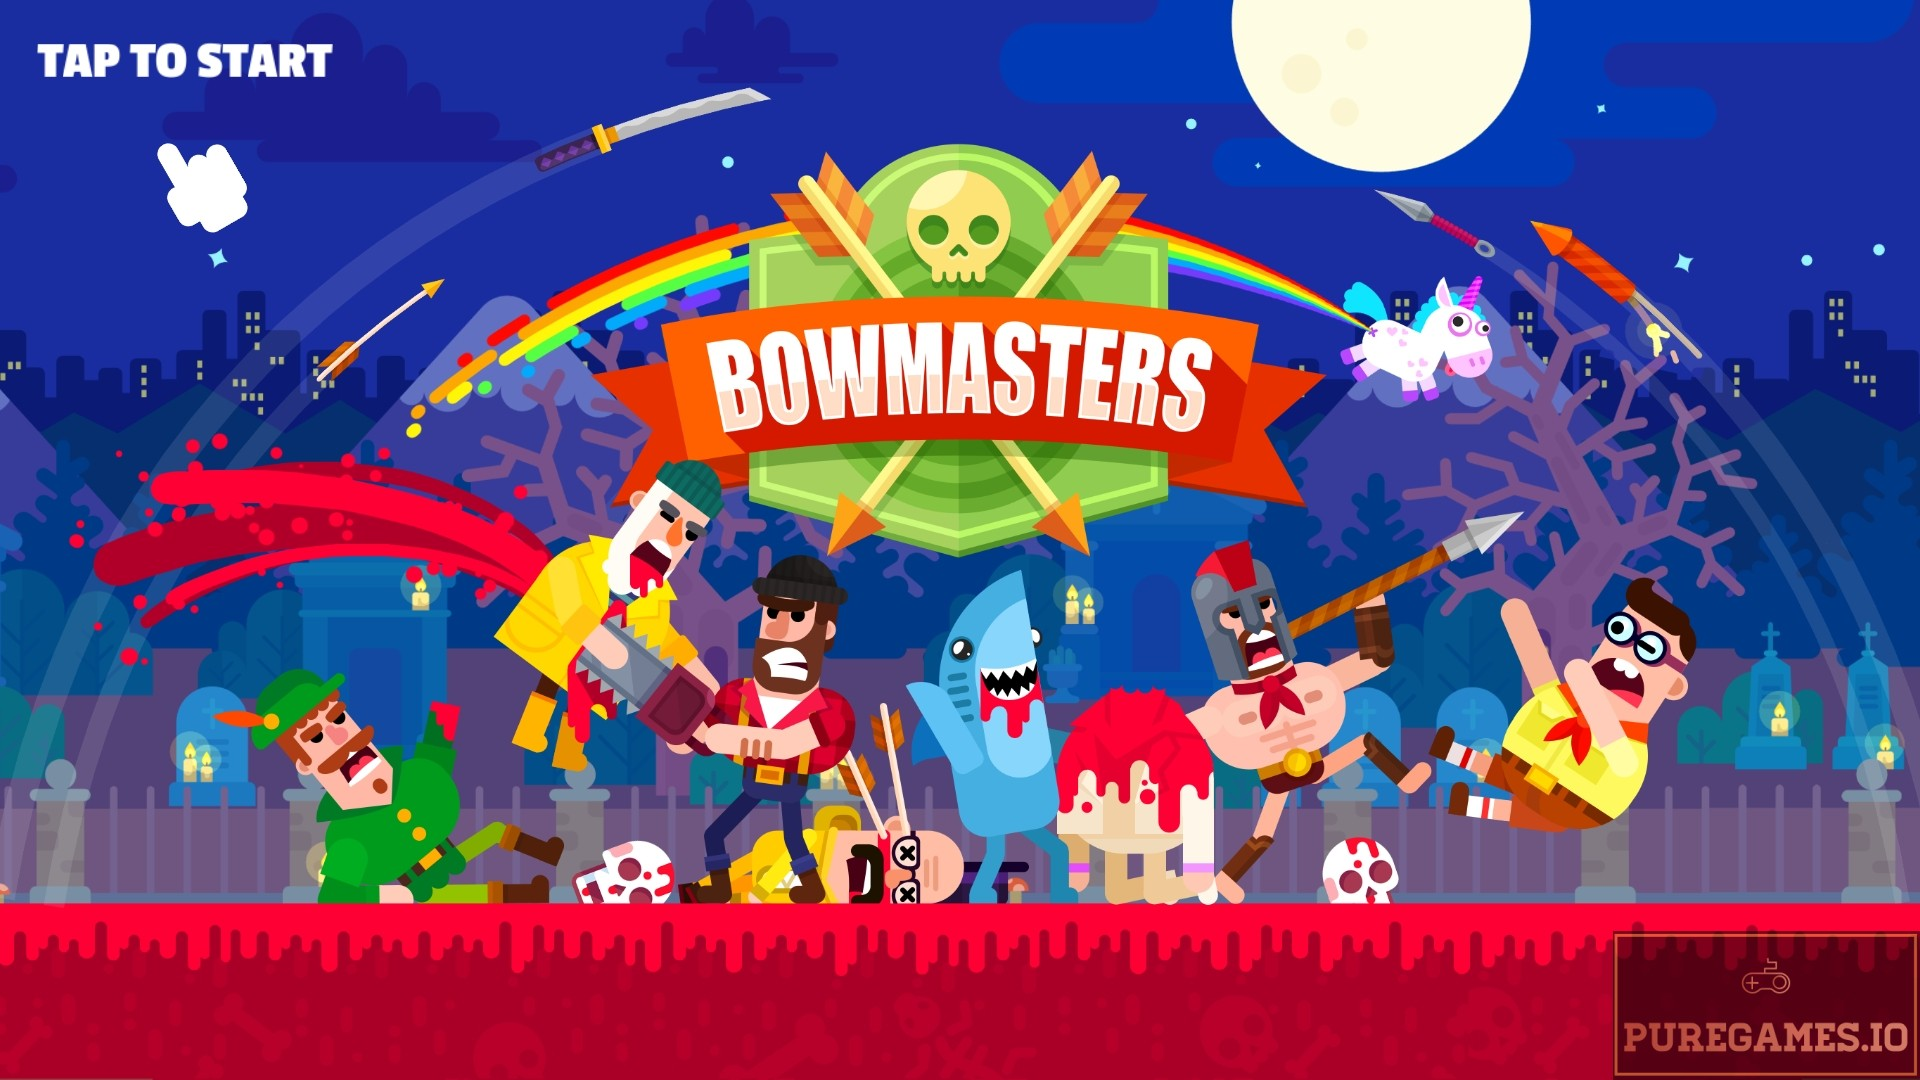 Download Bowmasters APK - For Android/iOS 9